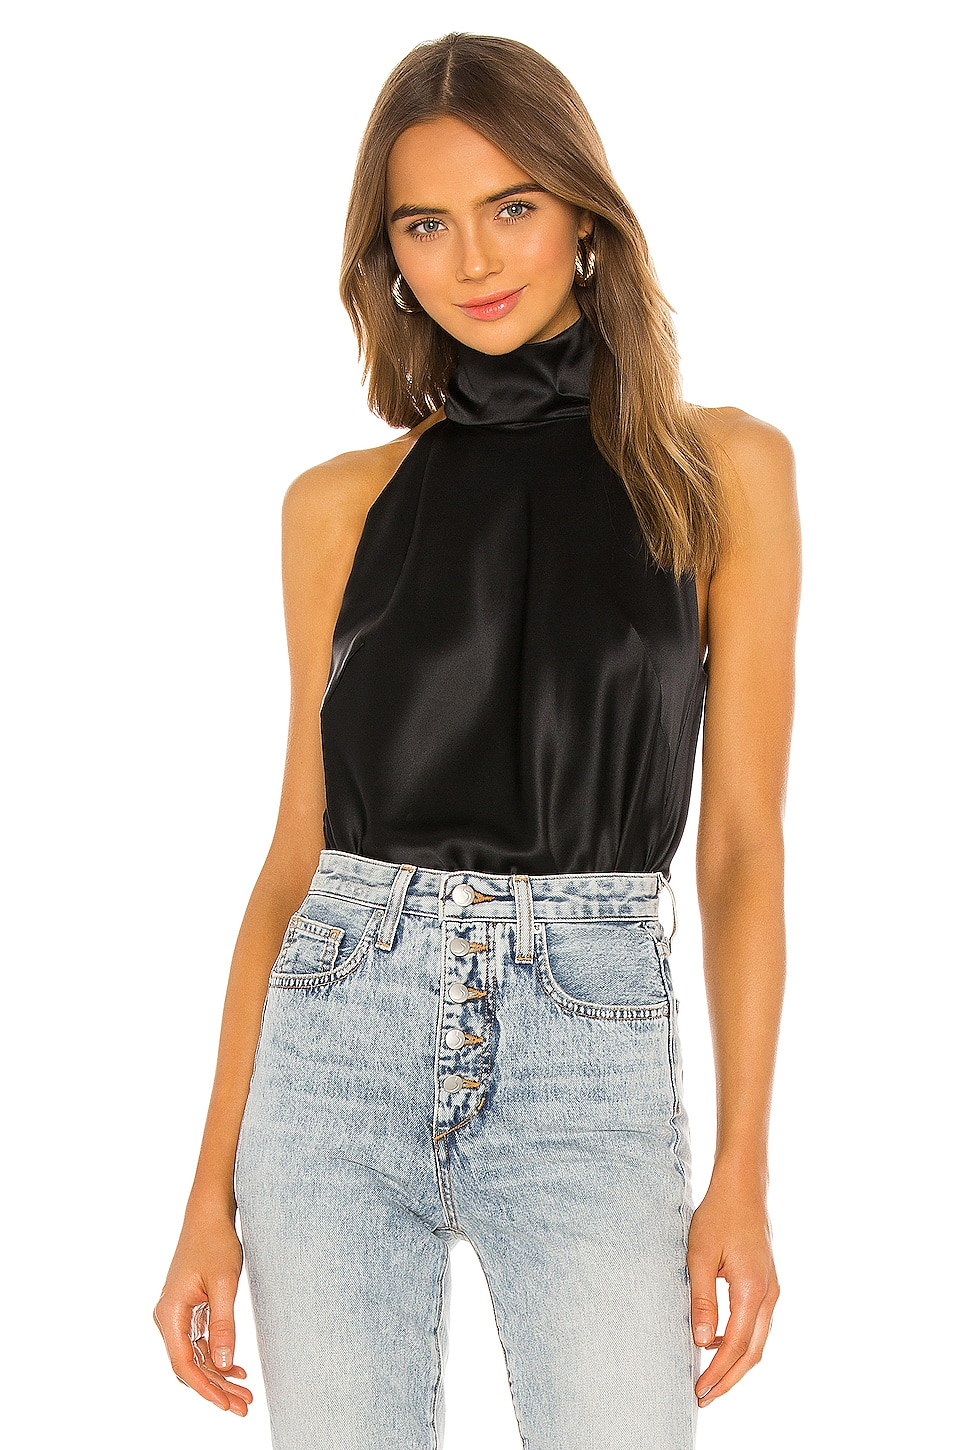 ALIX NYC Laight Bodysuit in Black